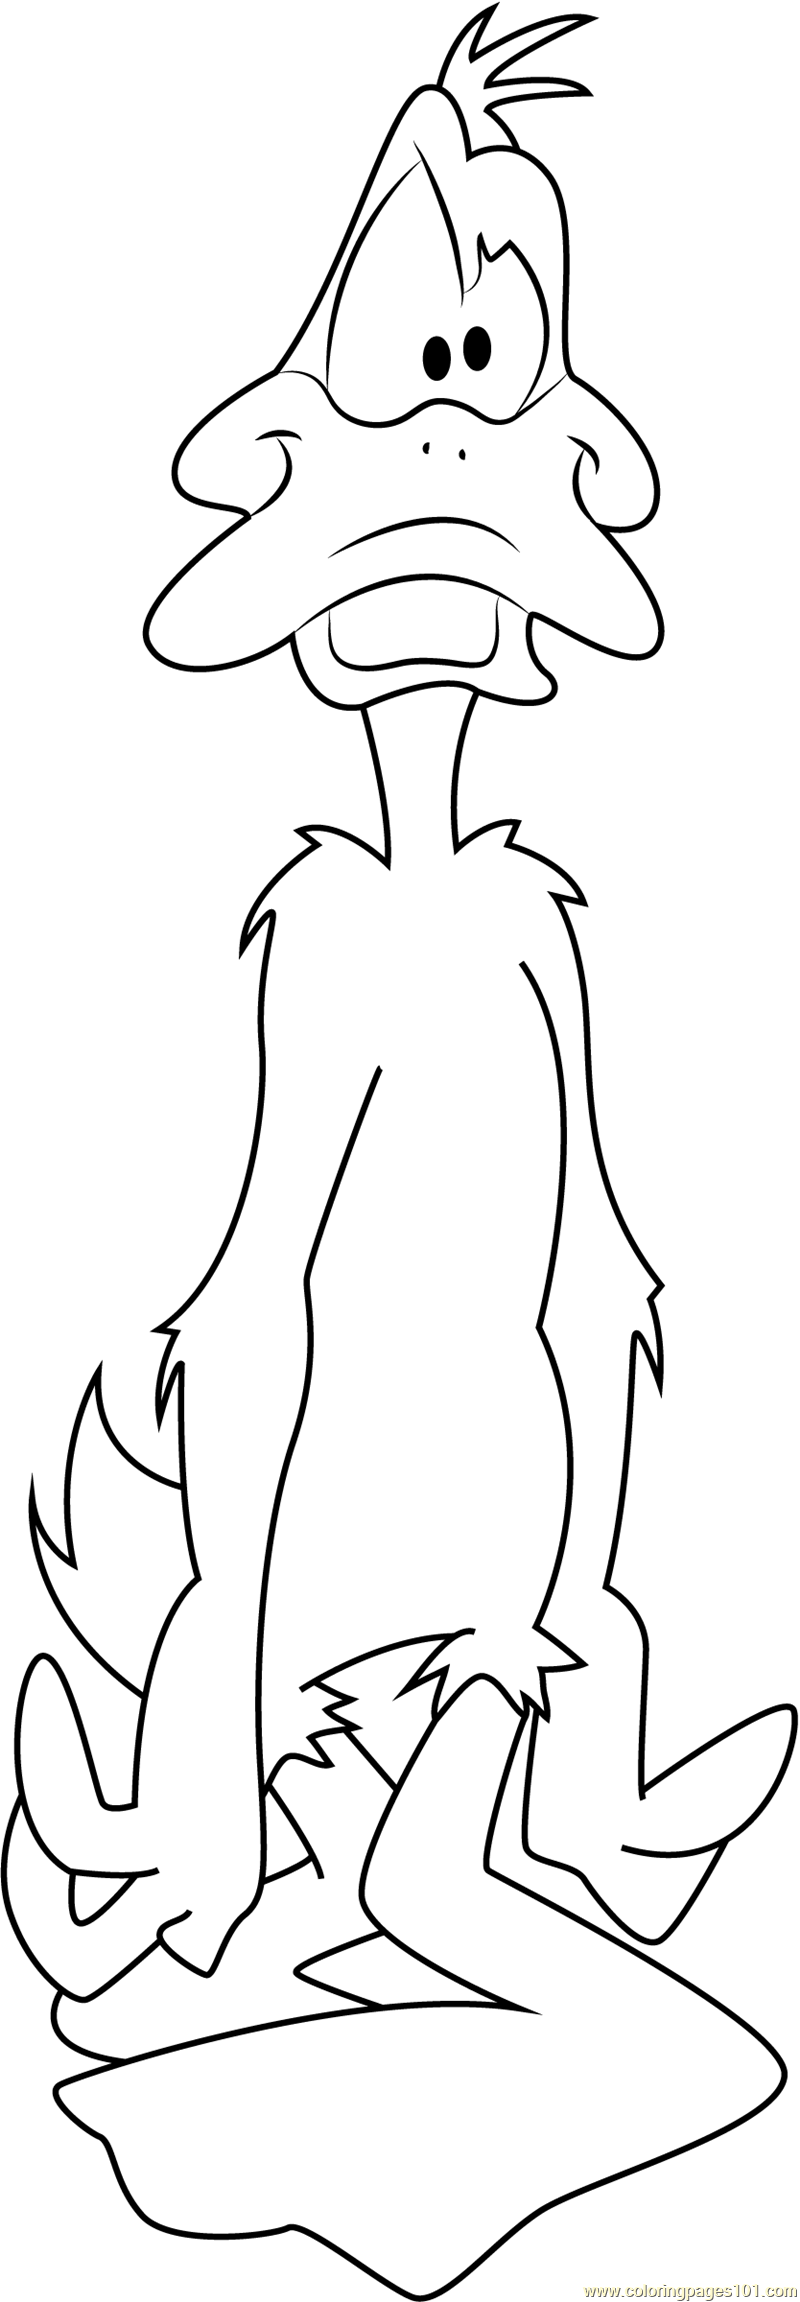 Daffy duck look at face coloring page free daffy duck for Duck face coloring pages